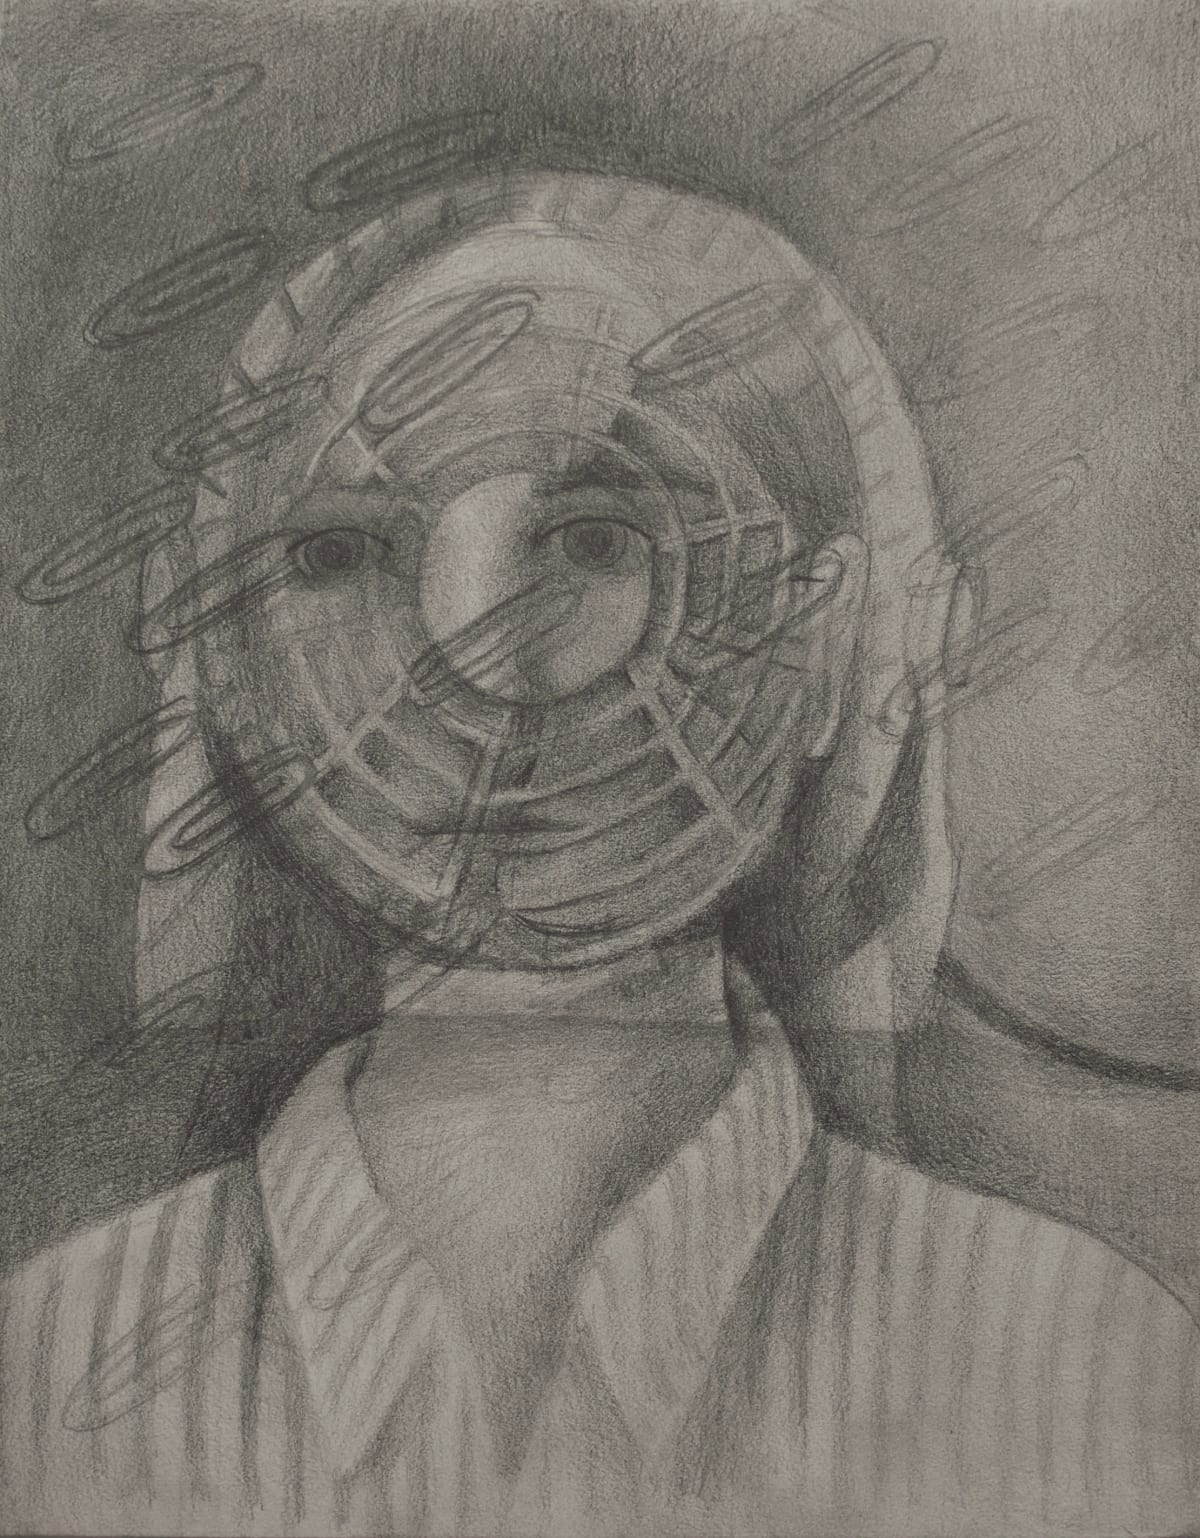 Vanessa Gully Santiago Desk Job, 2018 Graphite on paper 14 x 11 inches